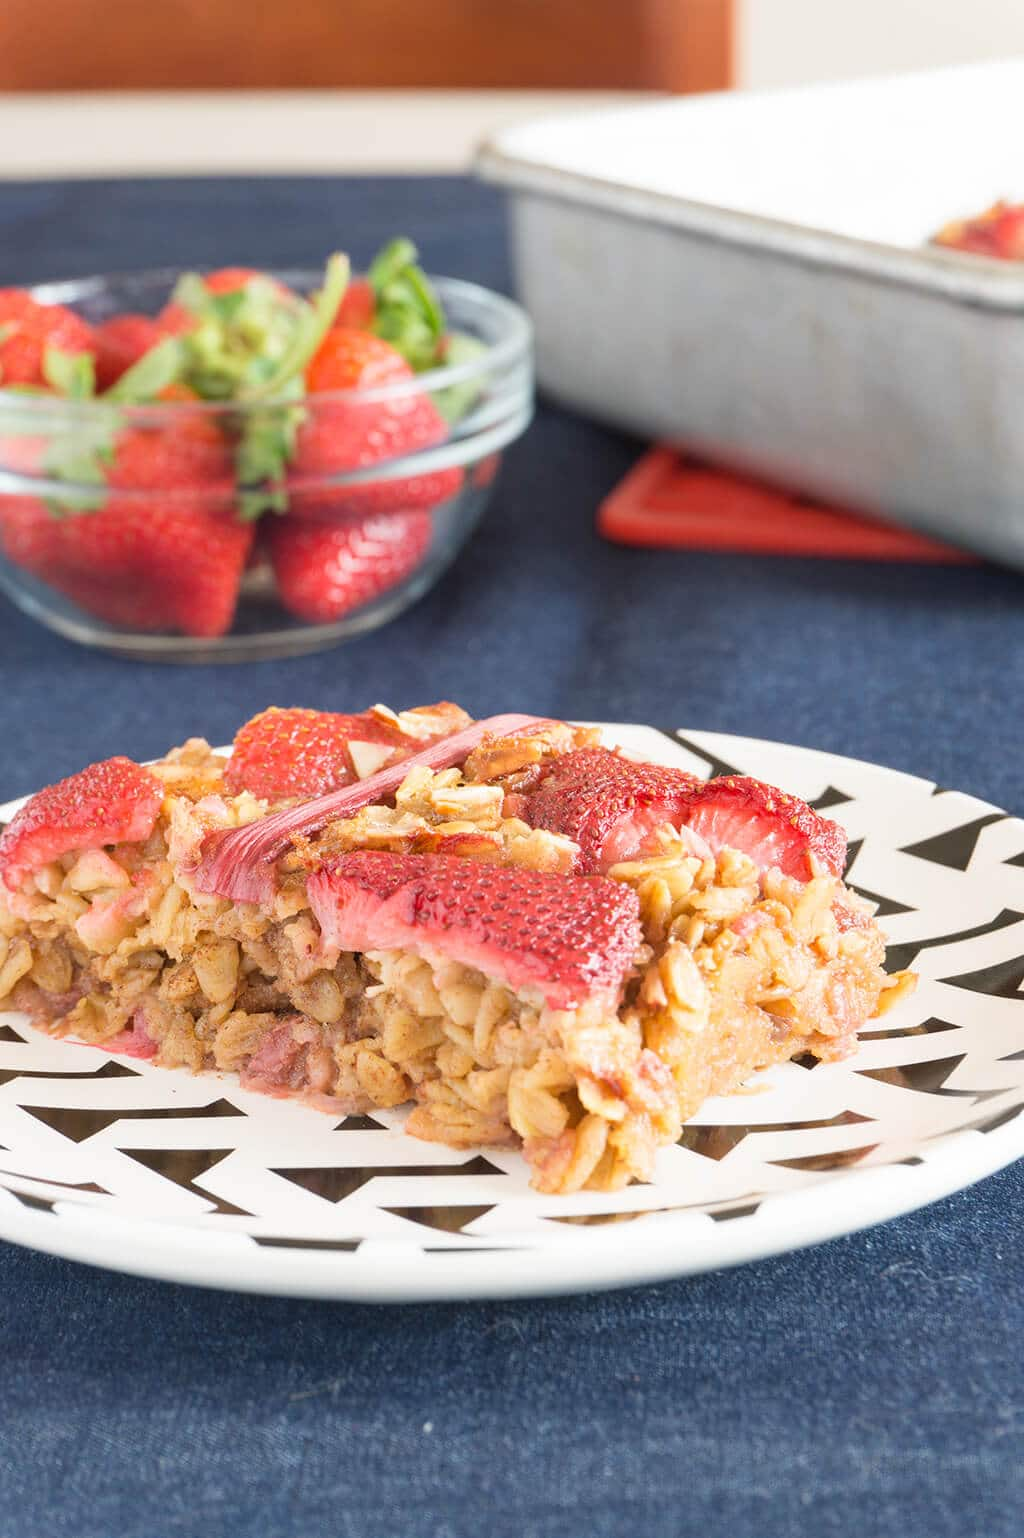 Strawberry Rhubarb Baked Oatmeal. Almonds, Fresh Rhubarb + Sweet Strawberries create a simple baked oatmeal. A great breakfast for the week ahead! | RHUBARB | STRAWBERRY | OATMEAL | BREAKFAST | GF | VEGAN | Recipe at OatandSesame.com